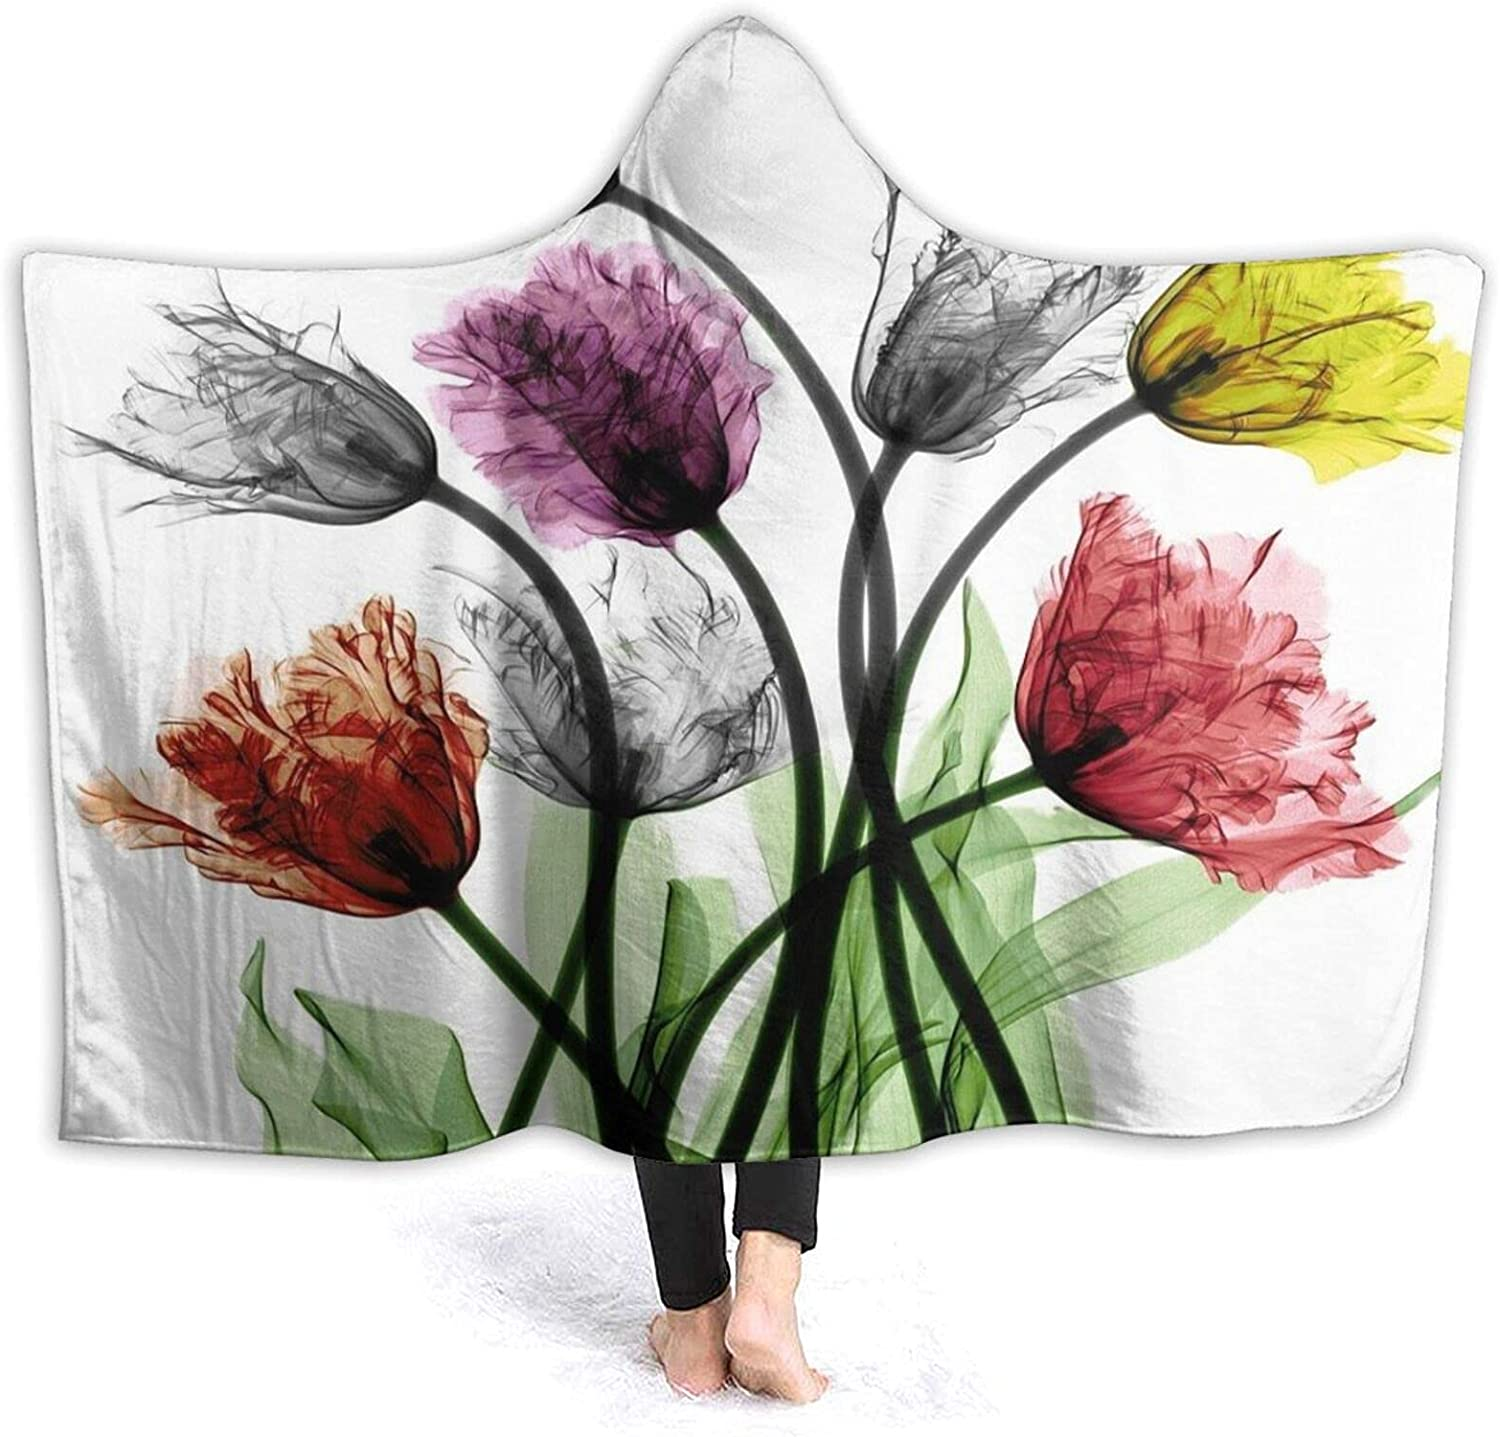 Hooded Blanket Colorful Fall store Adult Purchase Kids Flora for